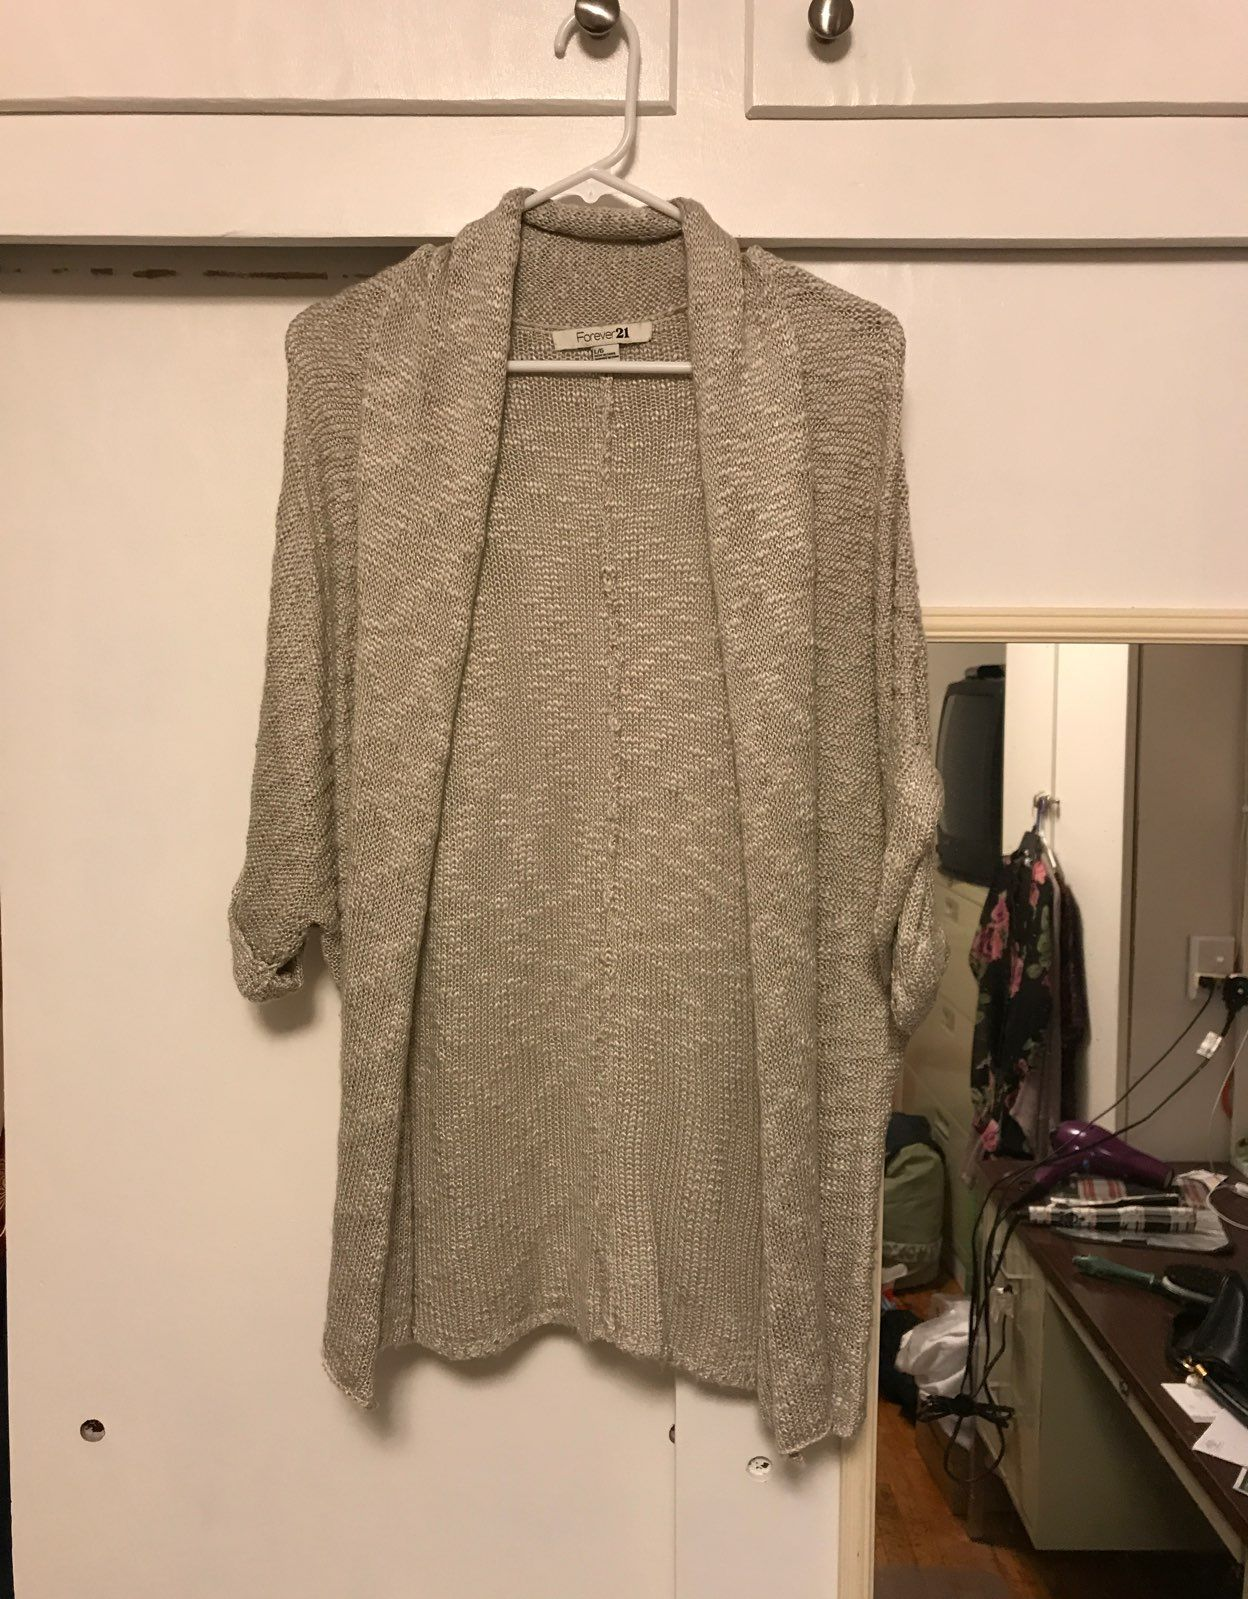 Soft Silvery White Short Sleeve Cardigan - Mercari: BUY & SELL ...